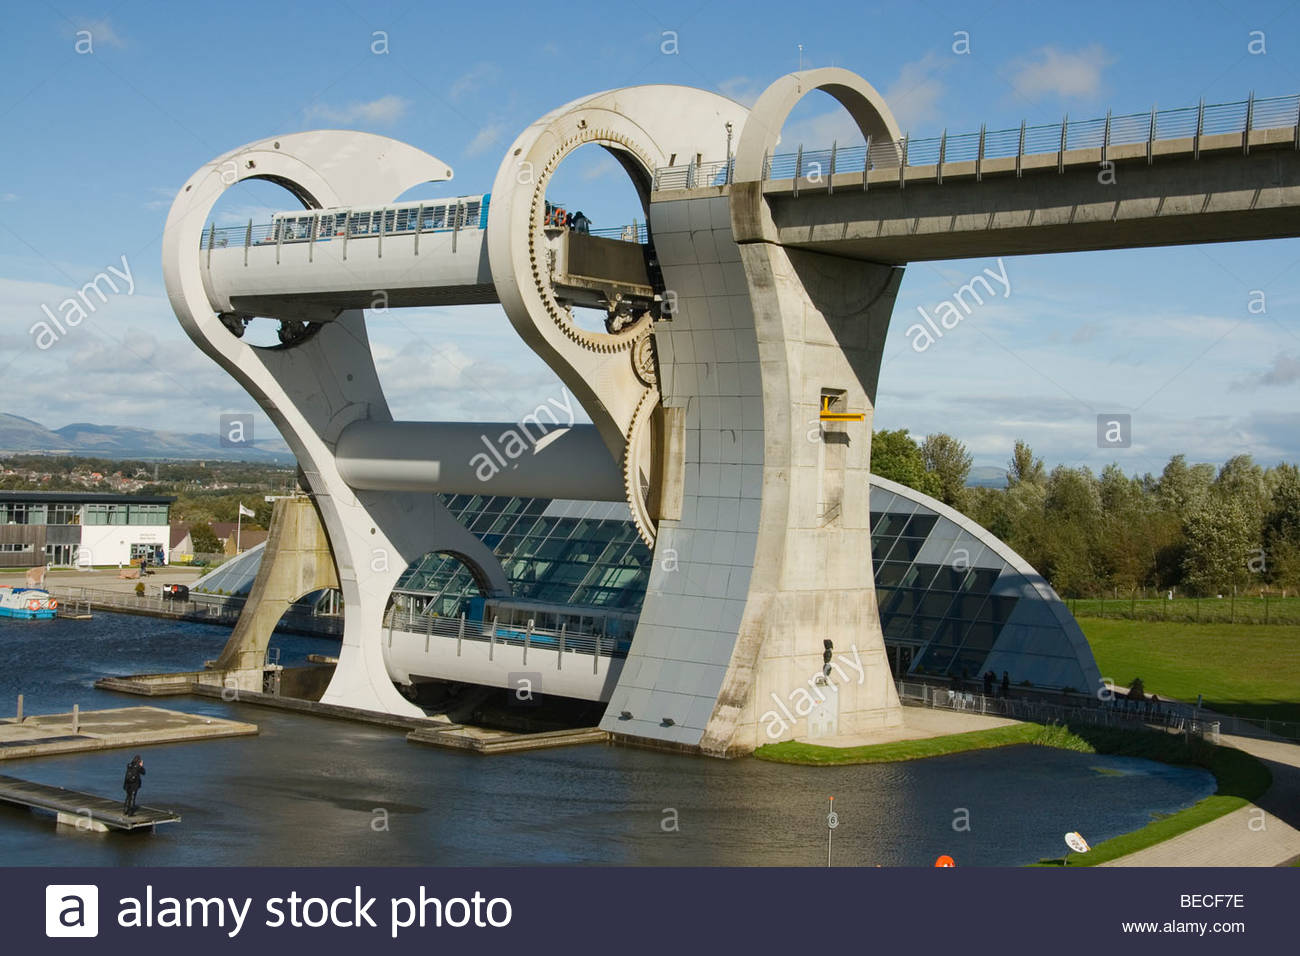 Scotland Falkirk Wheel showing boats in Rotation Trossachs - Stock Image